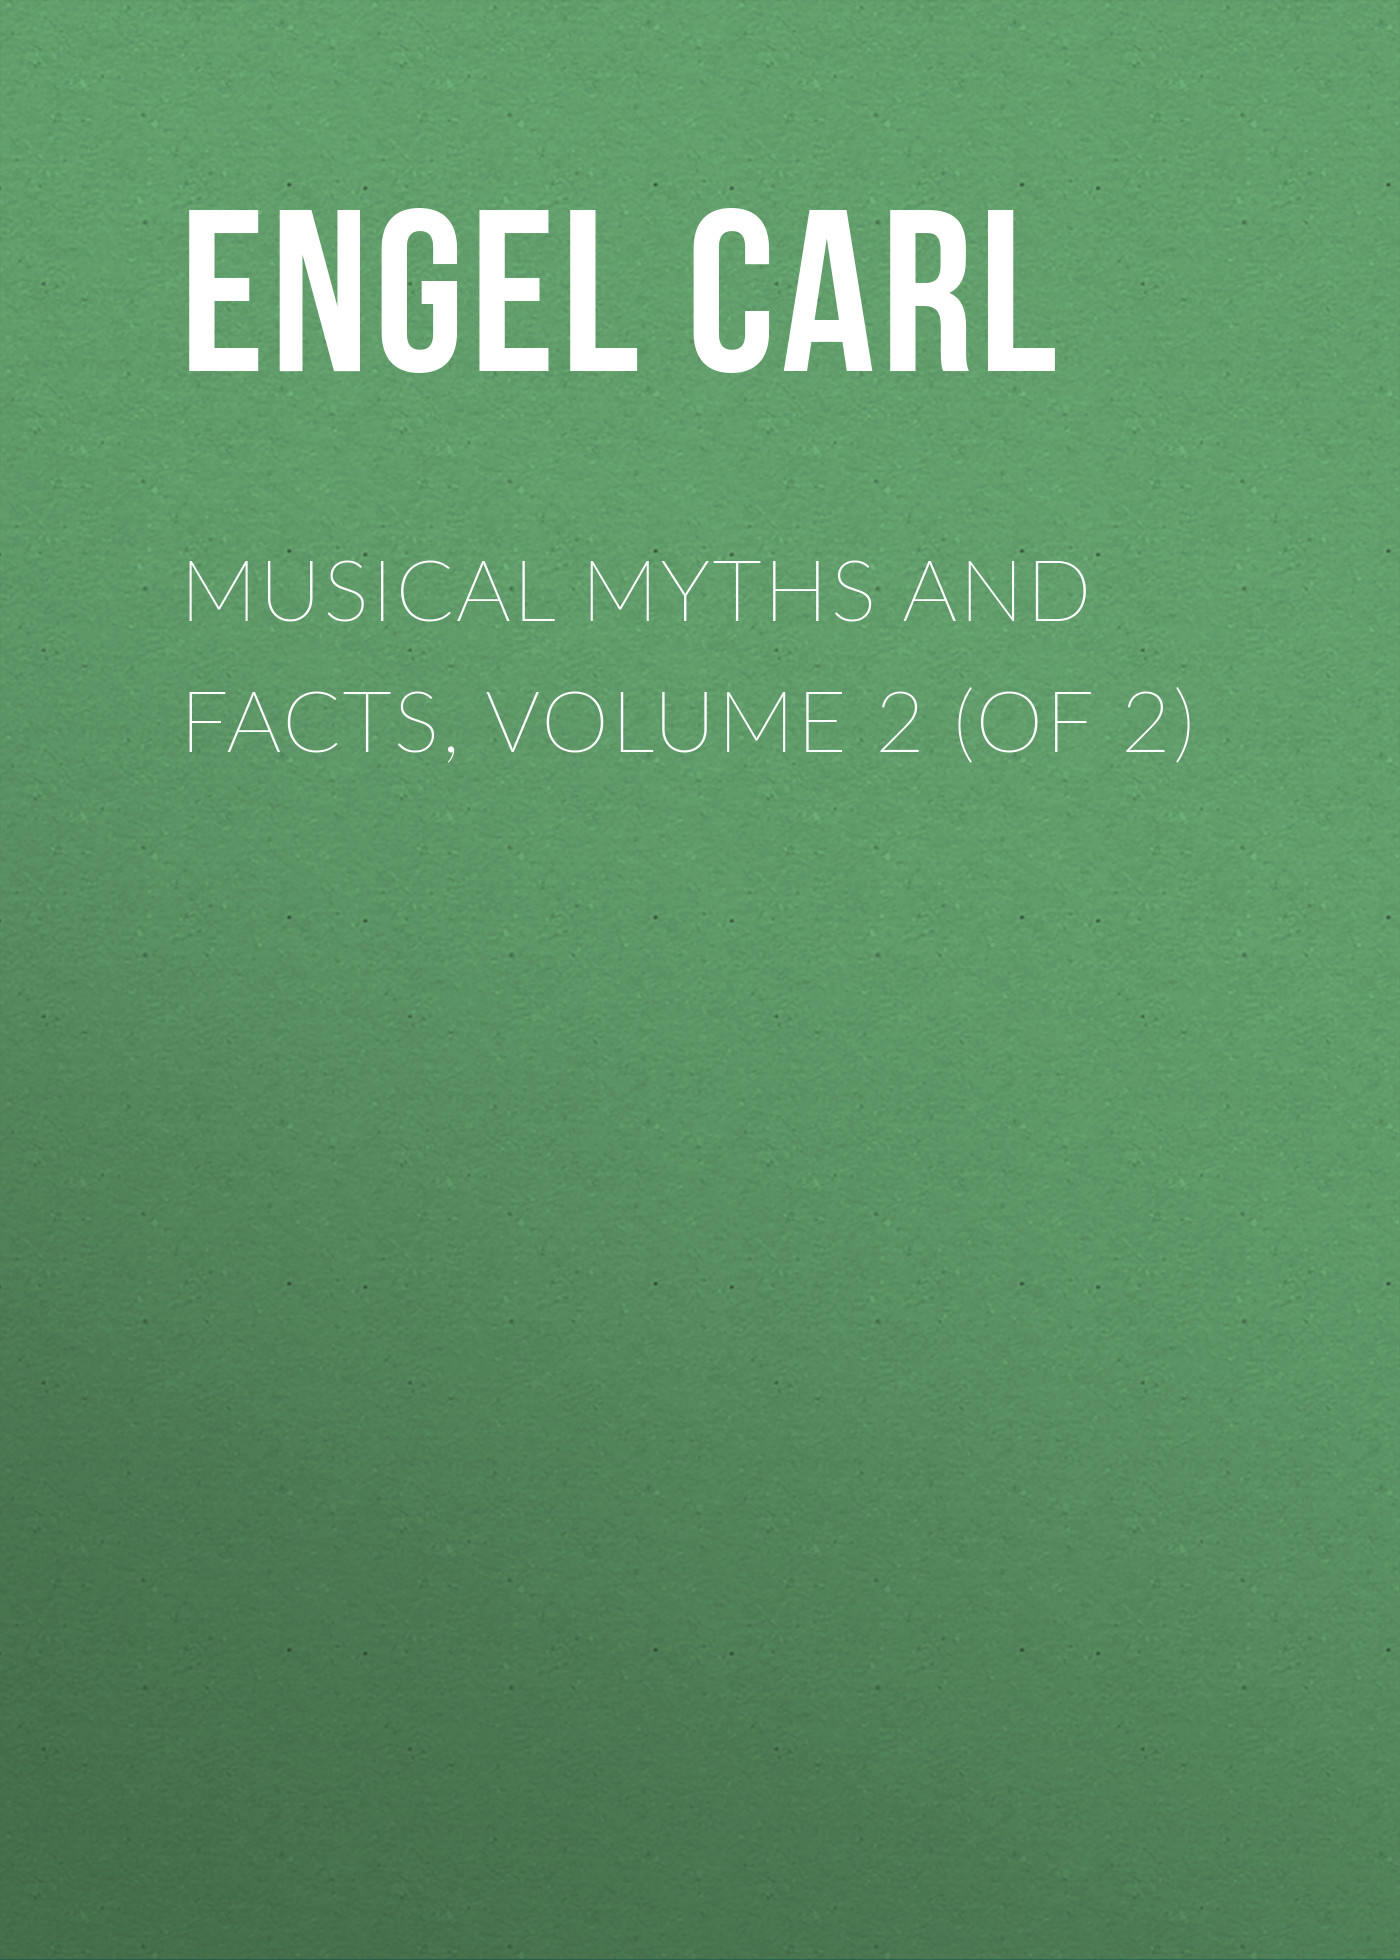 Engel Carl Musical Myths and Facts, Volume 2 (of 2) charmed volume 2